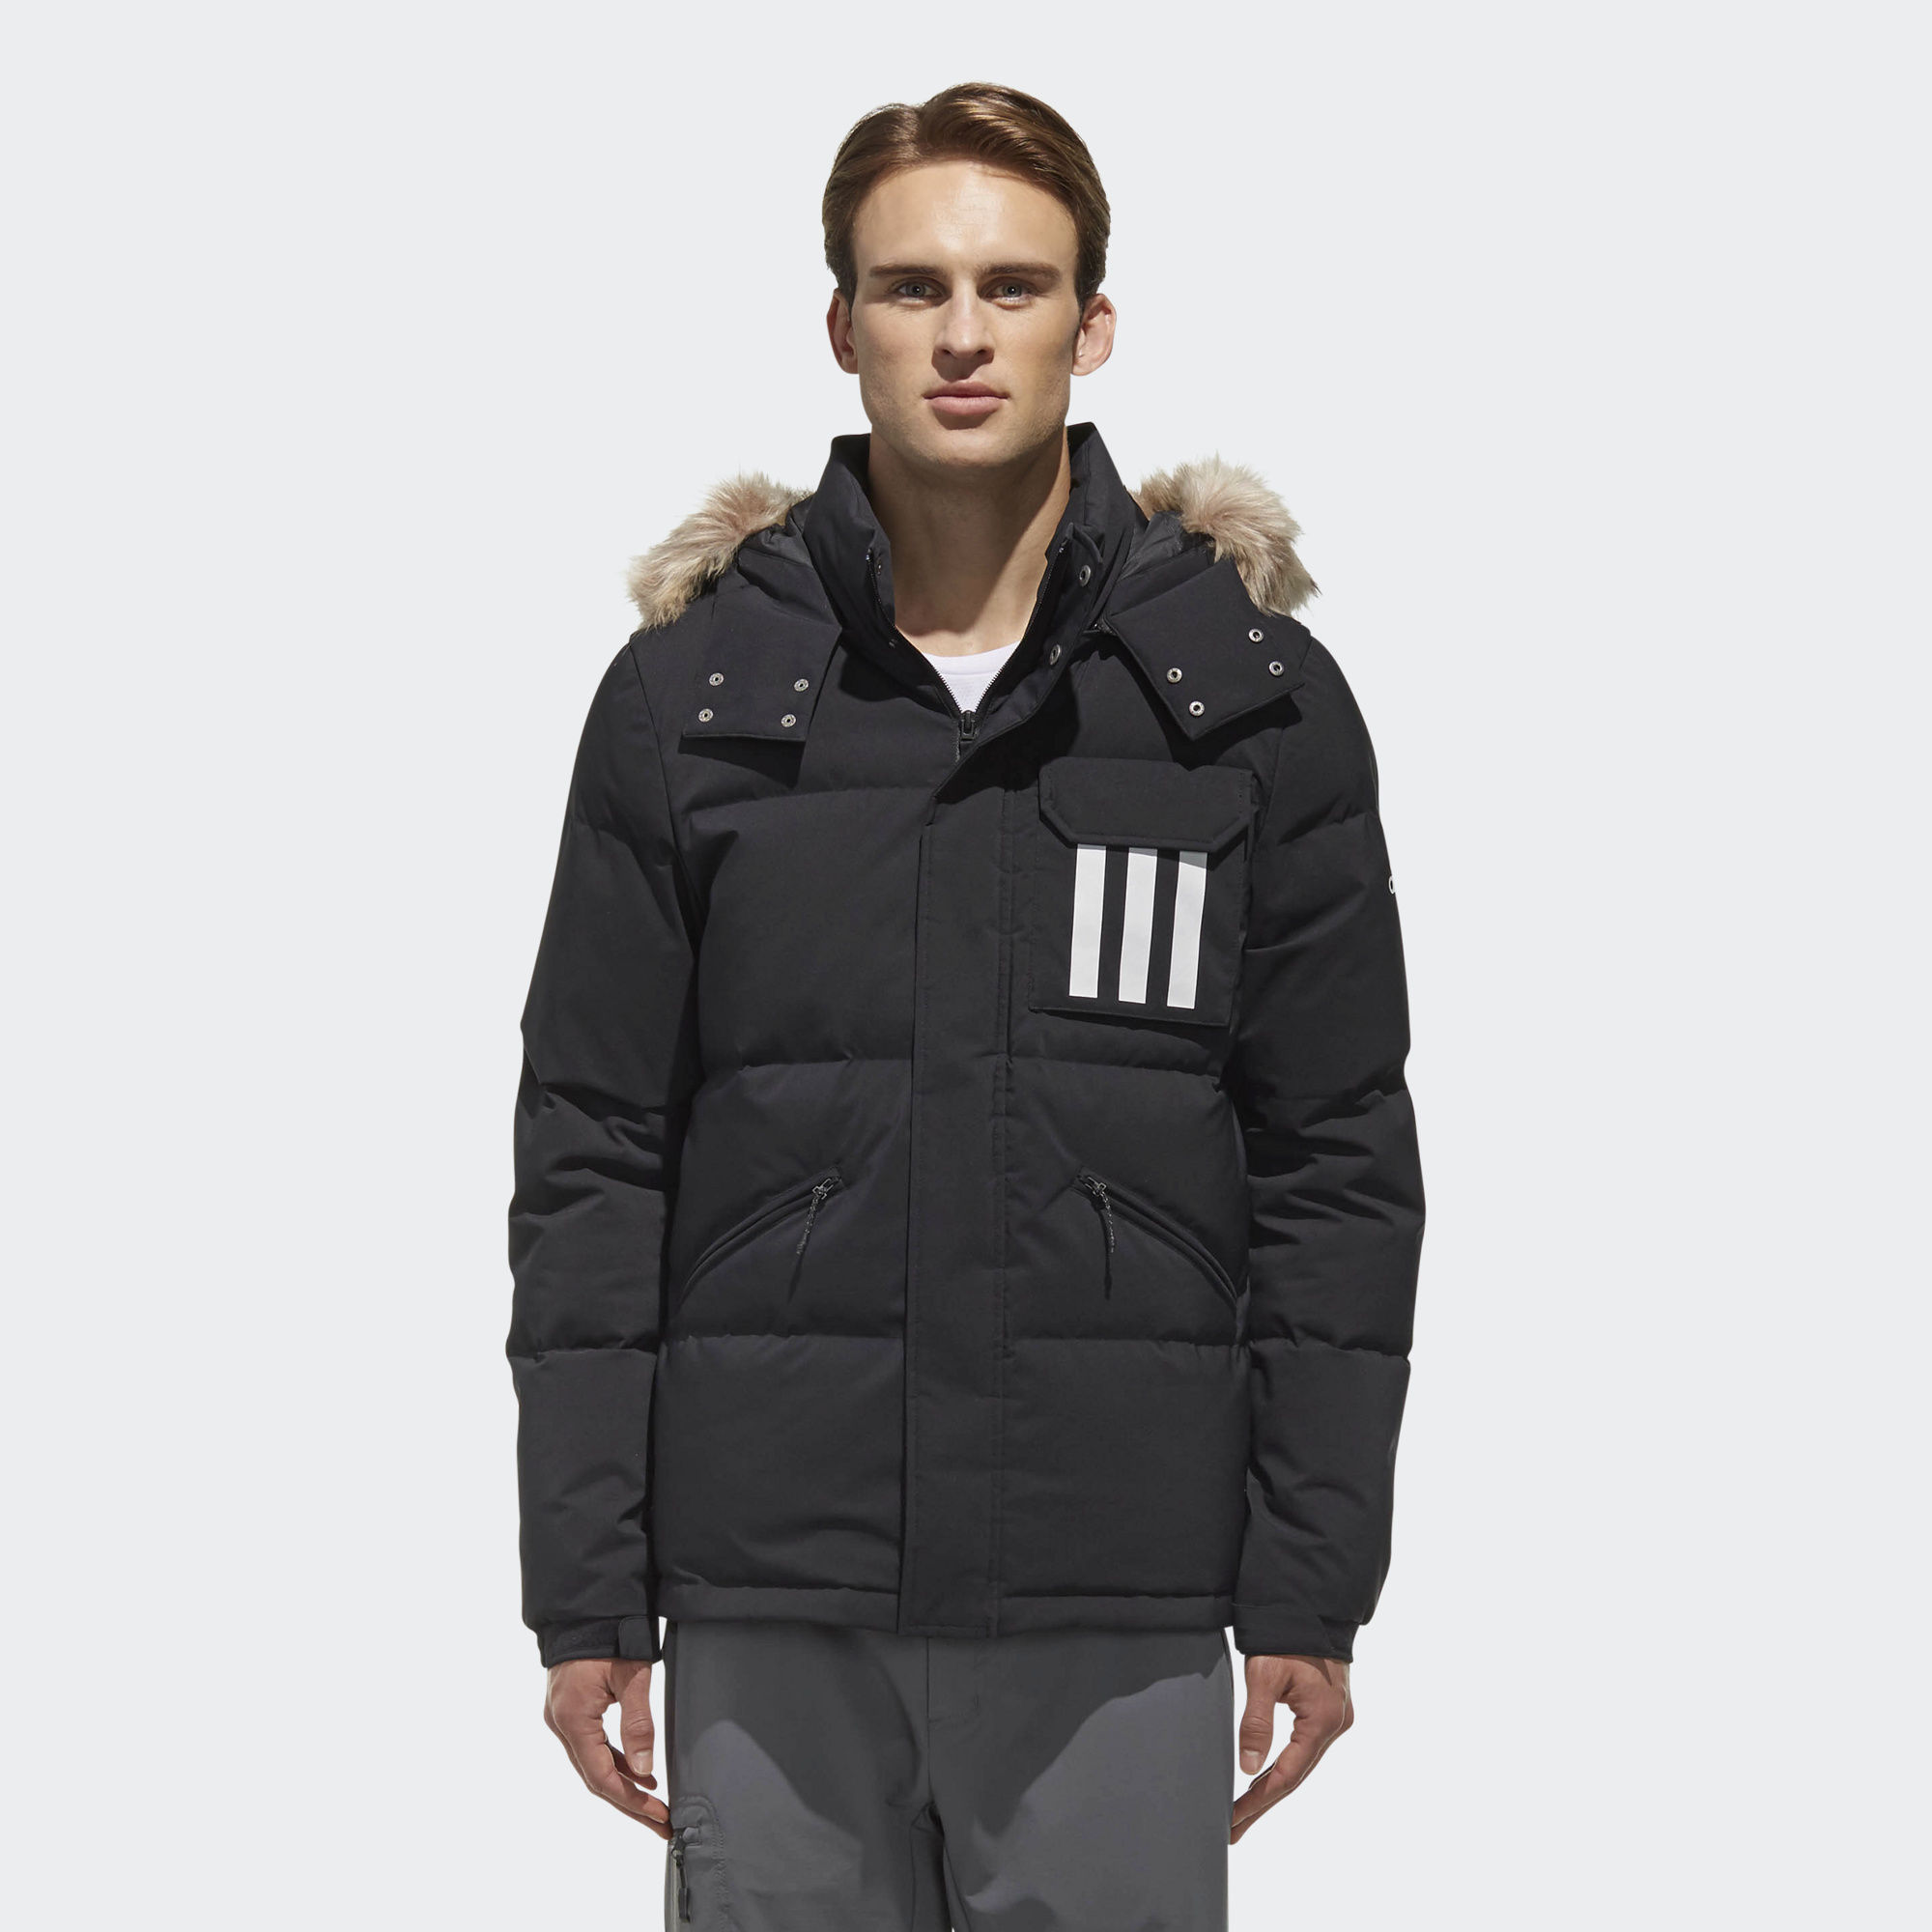 Пуховик 3-Stripes Puffa DT7917 adidas Performance - Украина   ONETEAM.COM.UA f68f067572a